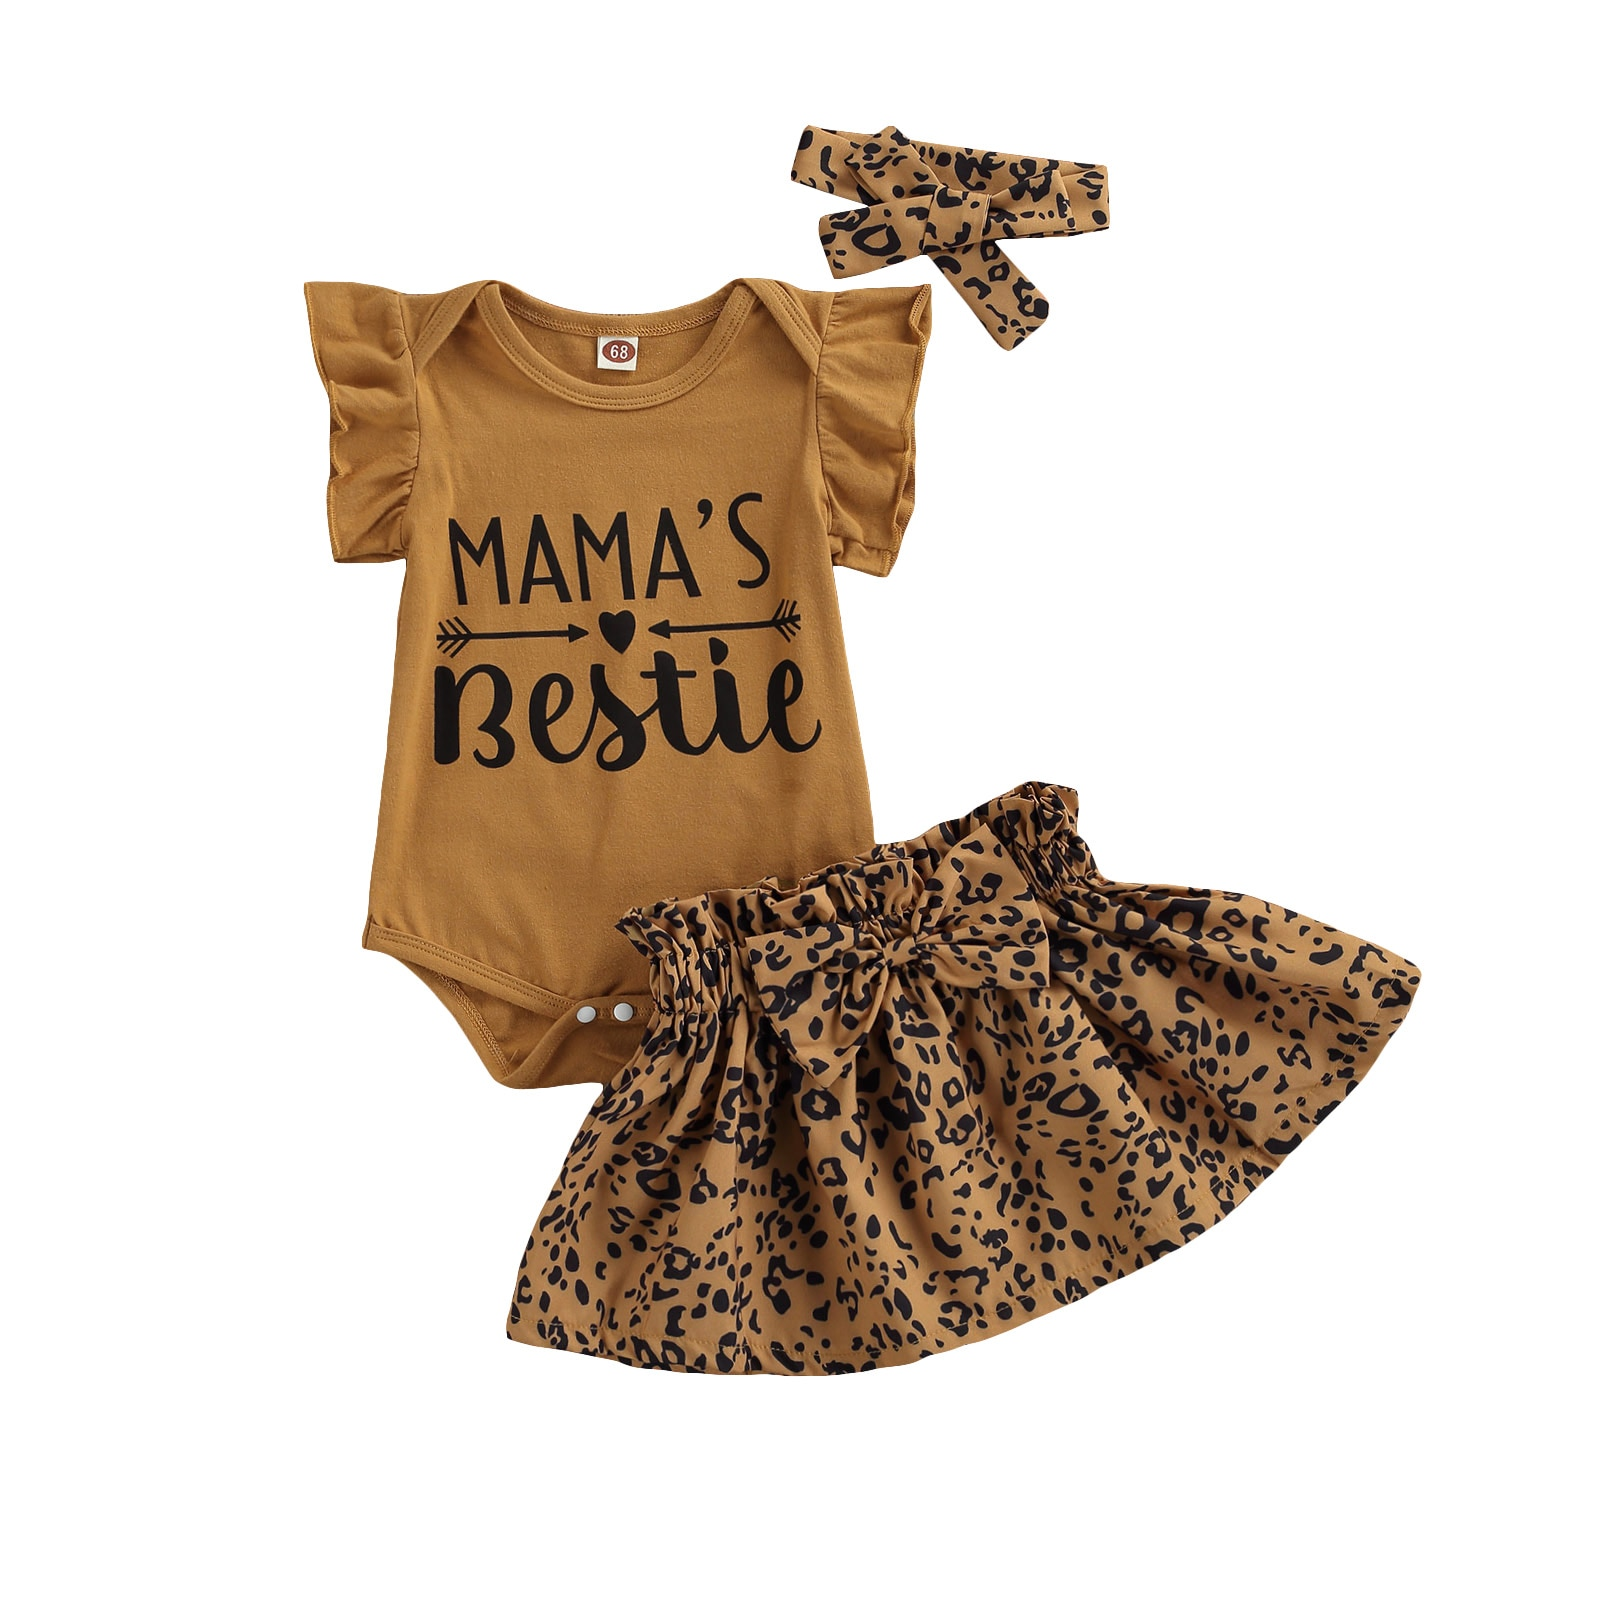 OPPERIAYA 3Pcs Fashionable Baby Girls Outfit Round Collar Fly Sleeve Letter Print Bodysuit Leopard Print Short Skirt Headwear